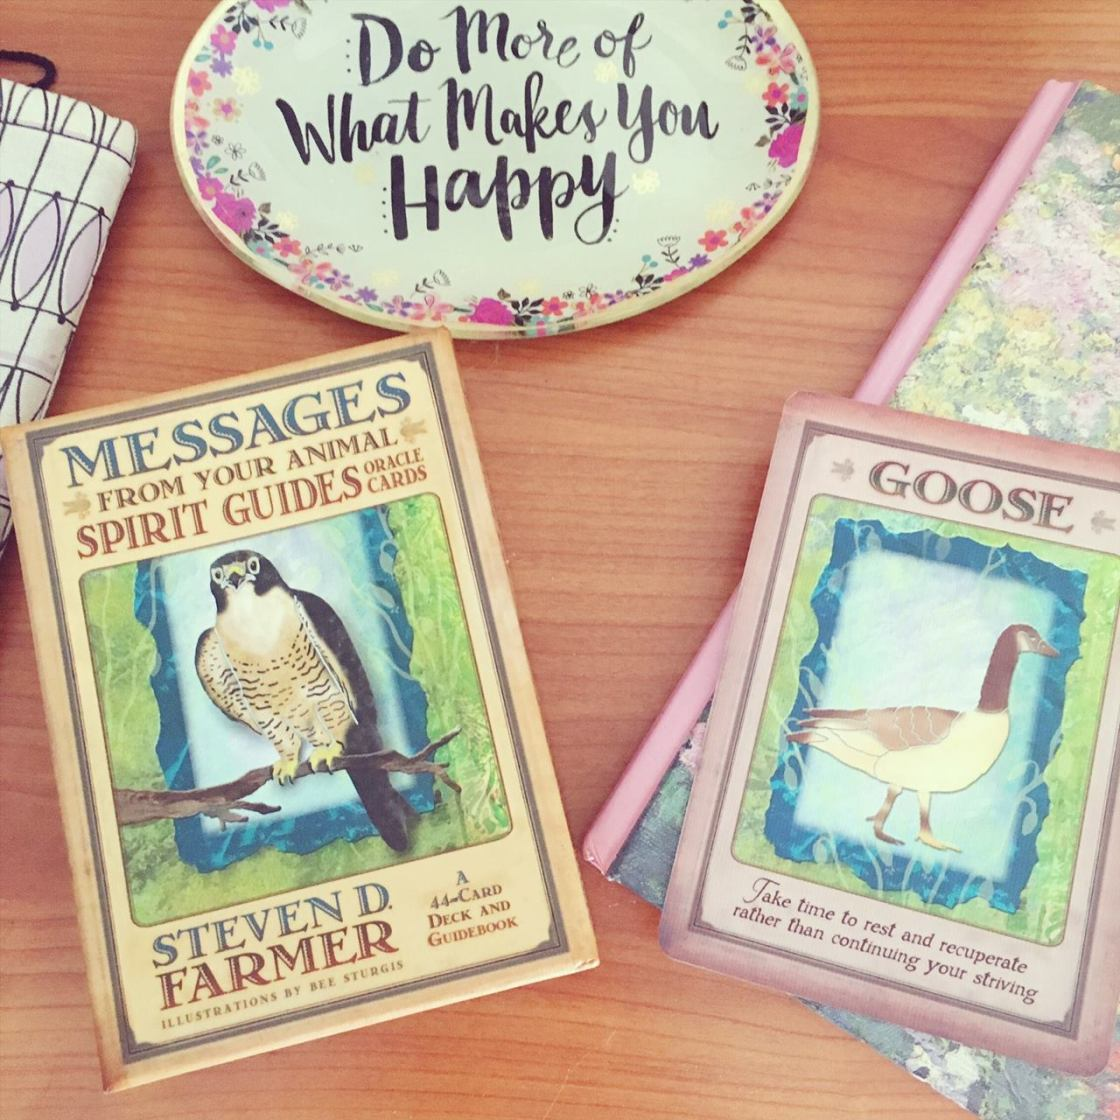 oracle cards, spirit animal, goose, steven d. farmer, do more of what makes you happy